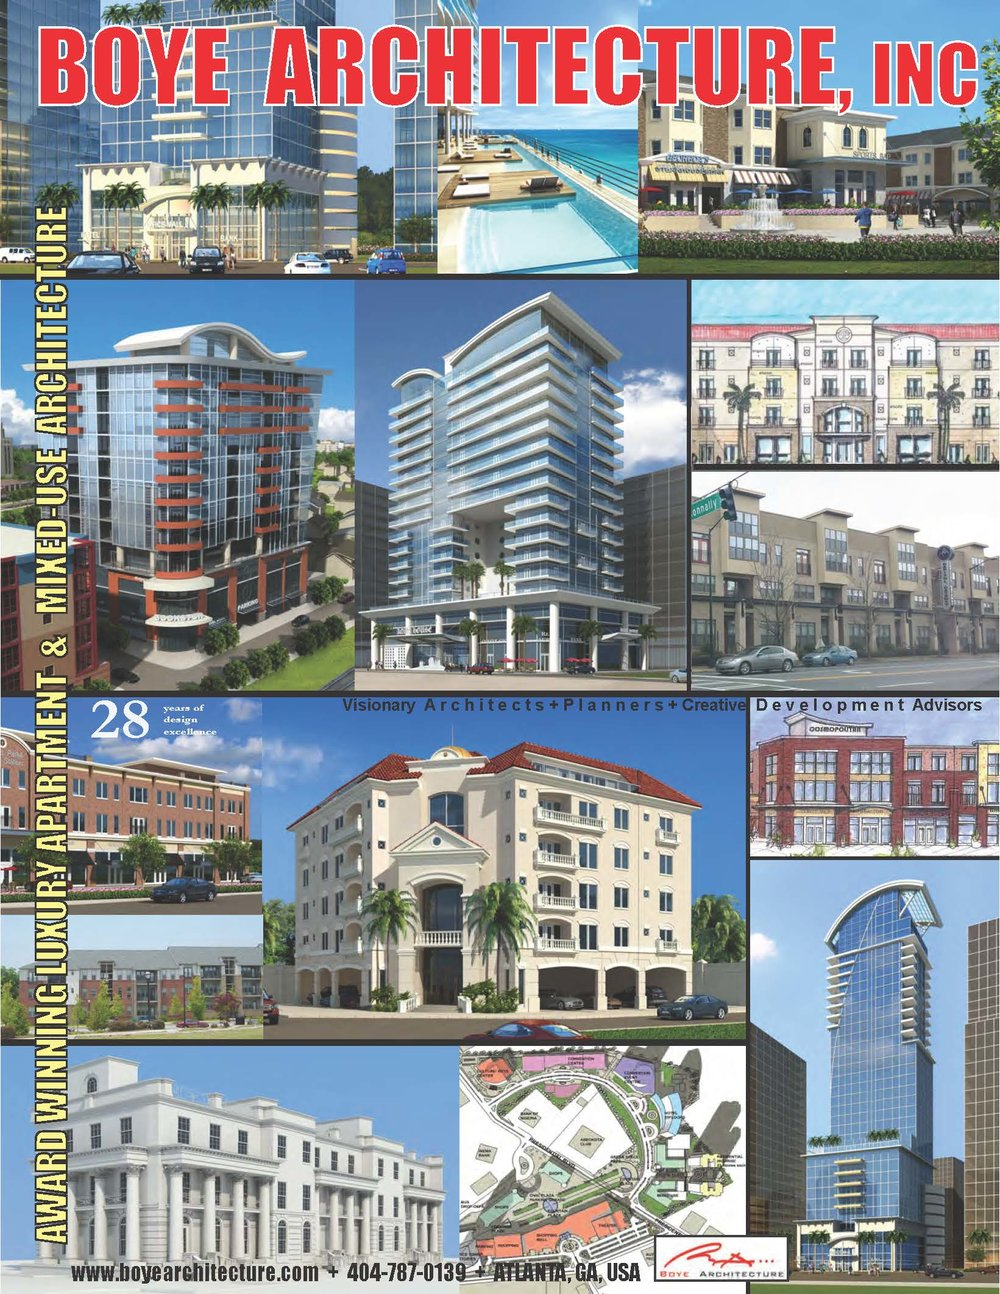 2015-CB4-BOYE ARCH-APT-TWHN-MIXED USE-HI RISE POSTER-2015-120415-res.jpg